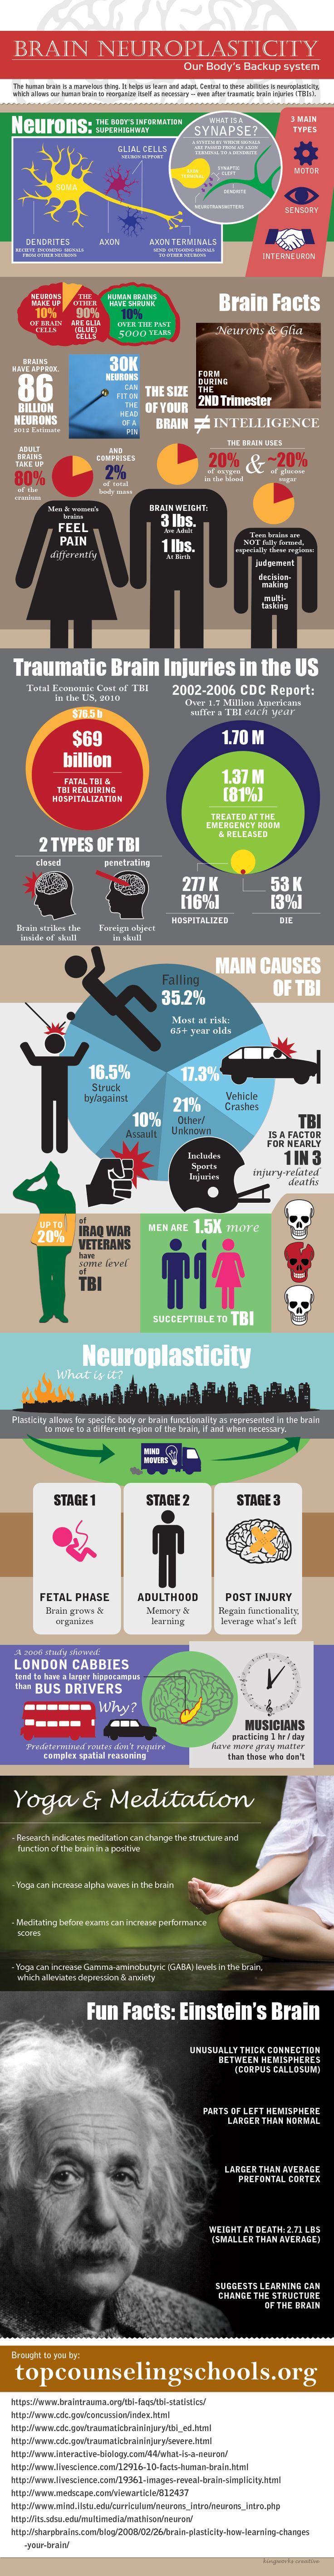 #Brain #Neuroplasticity. #infographic #neuroscience